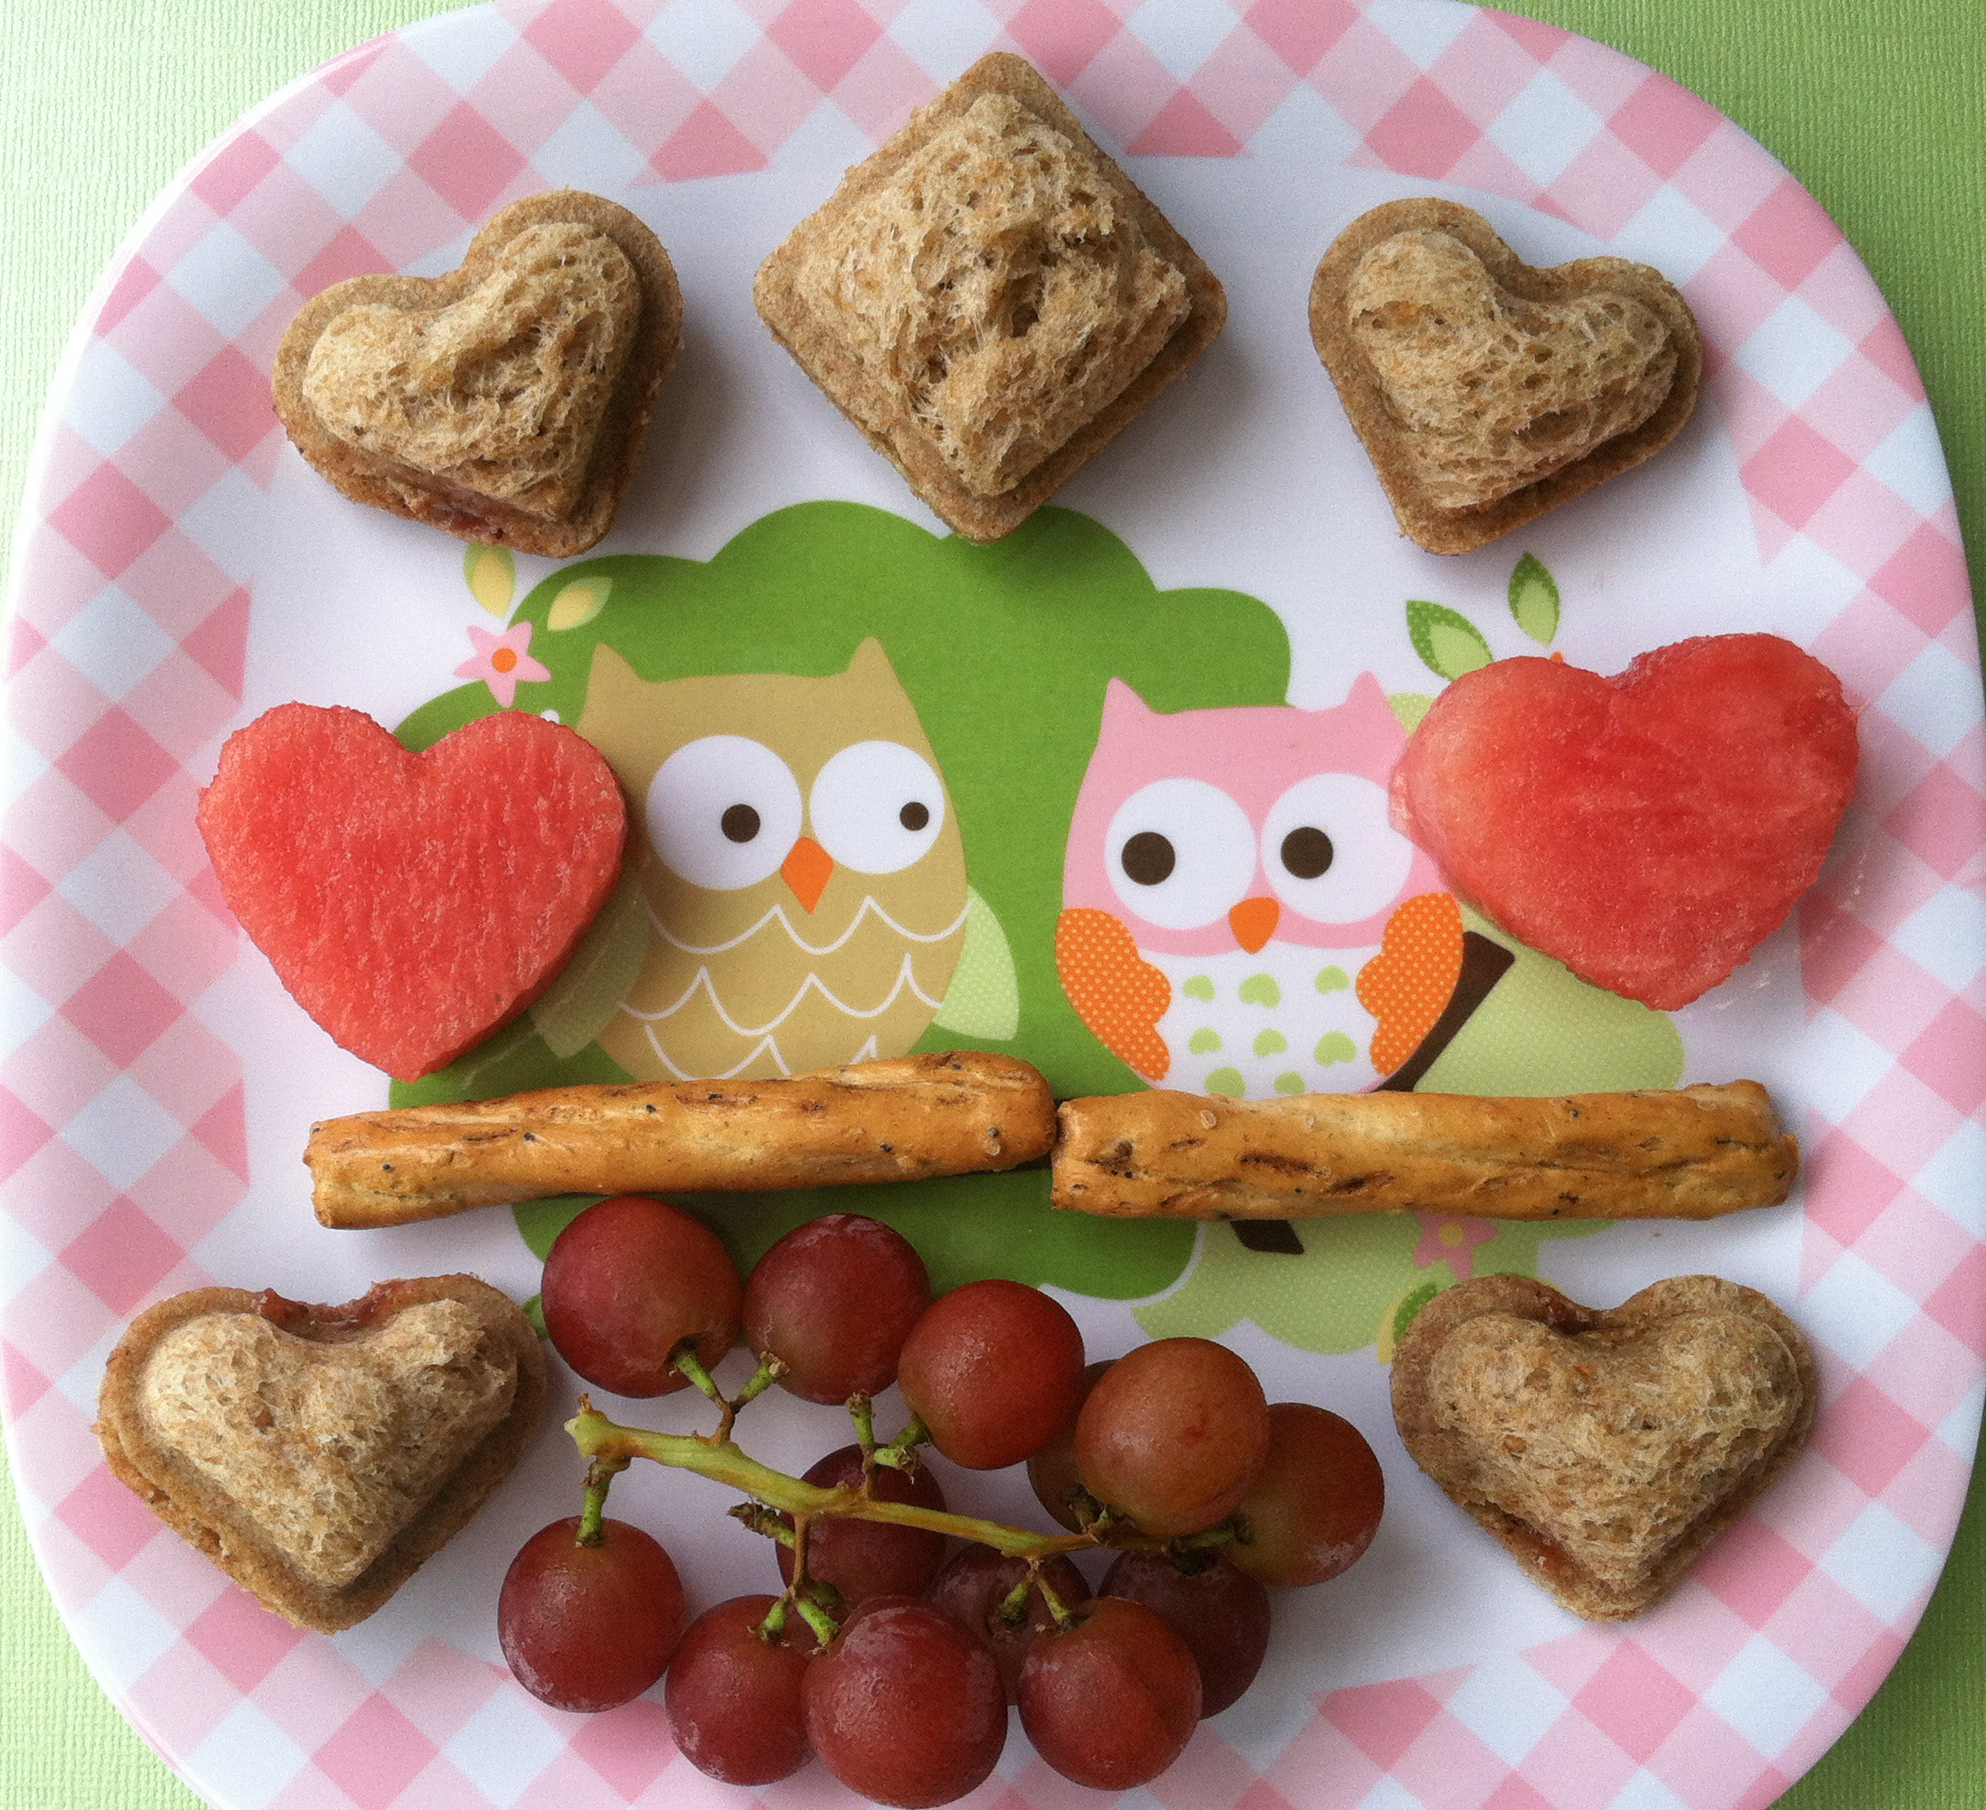 Vegan lunch owls are sitting on 2 Snyder's braided whole grain pretzel sticks